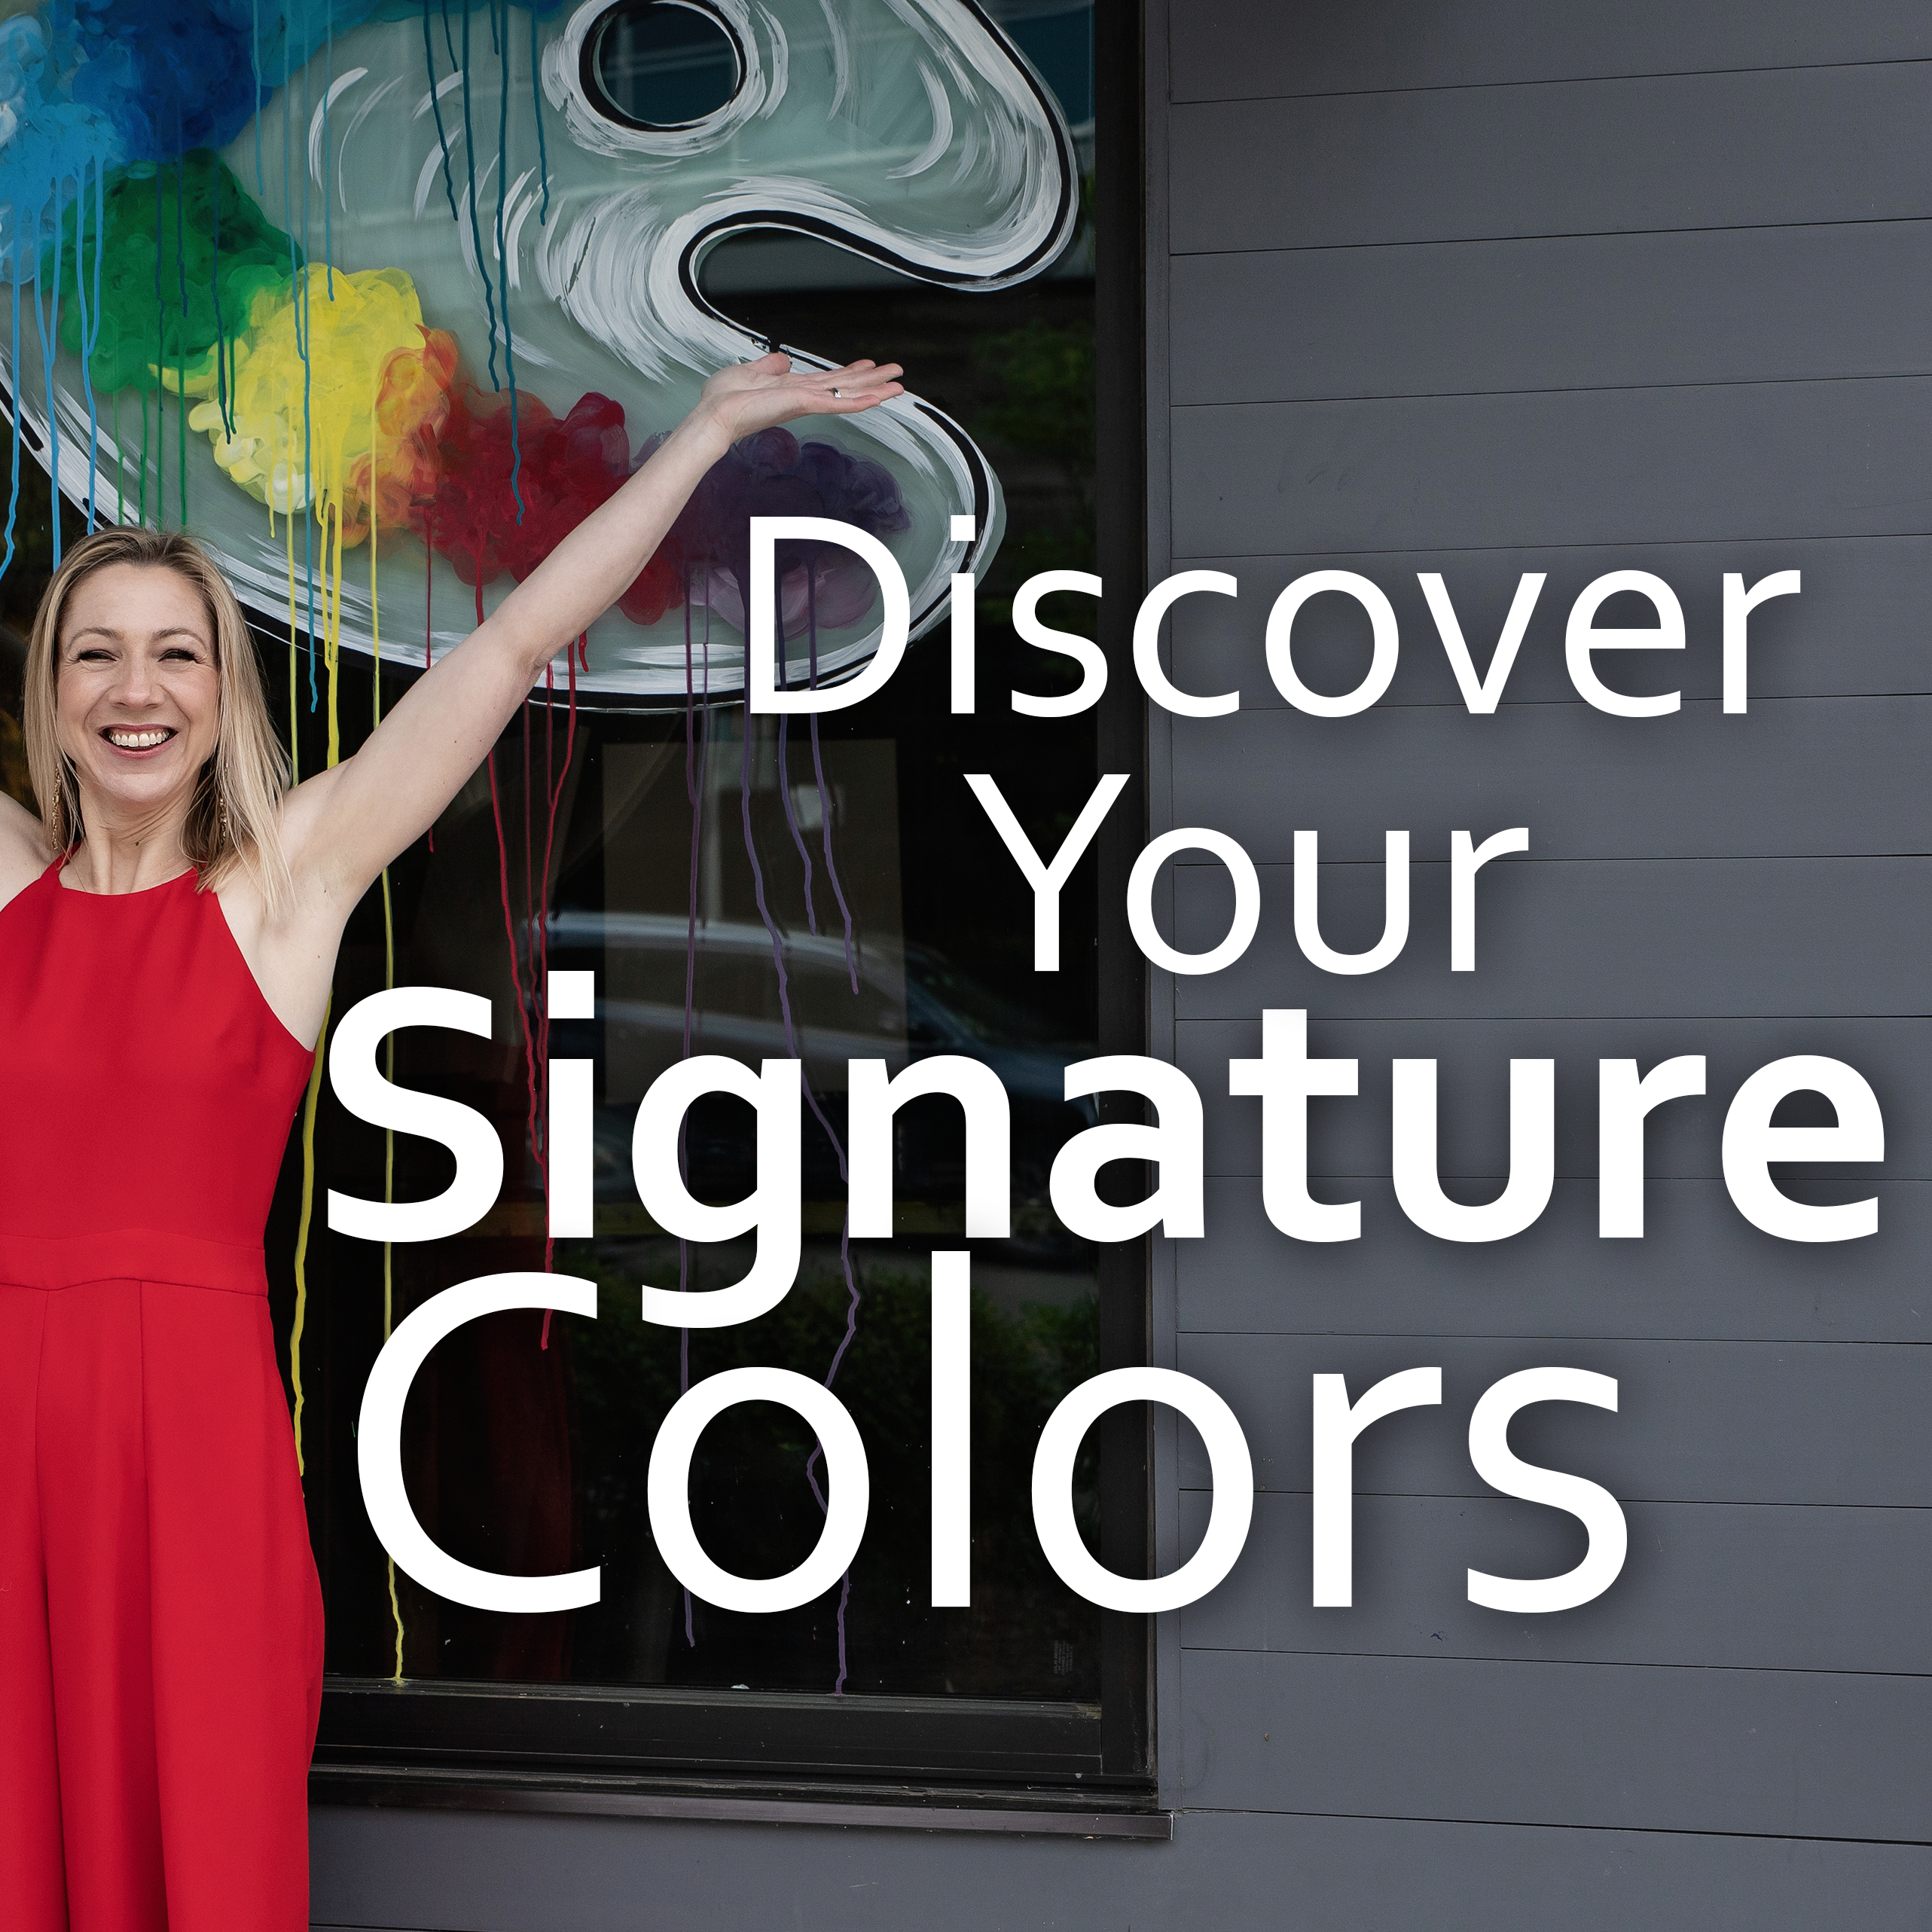 Discover Your Signature Colors